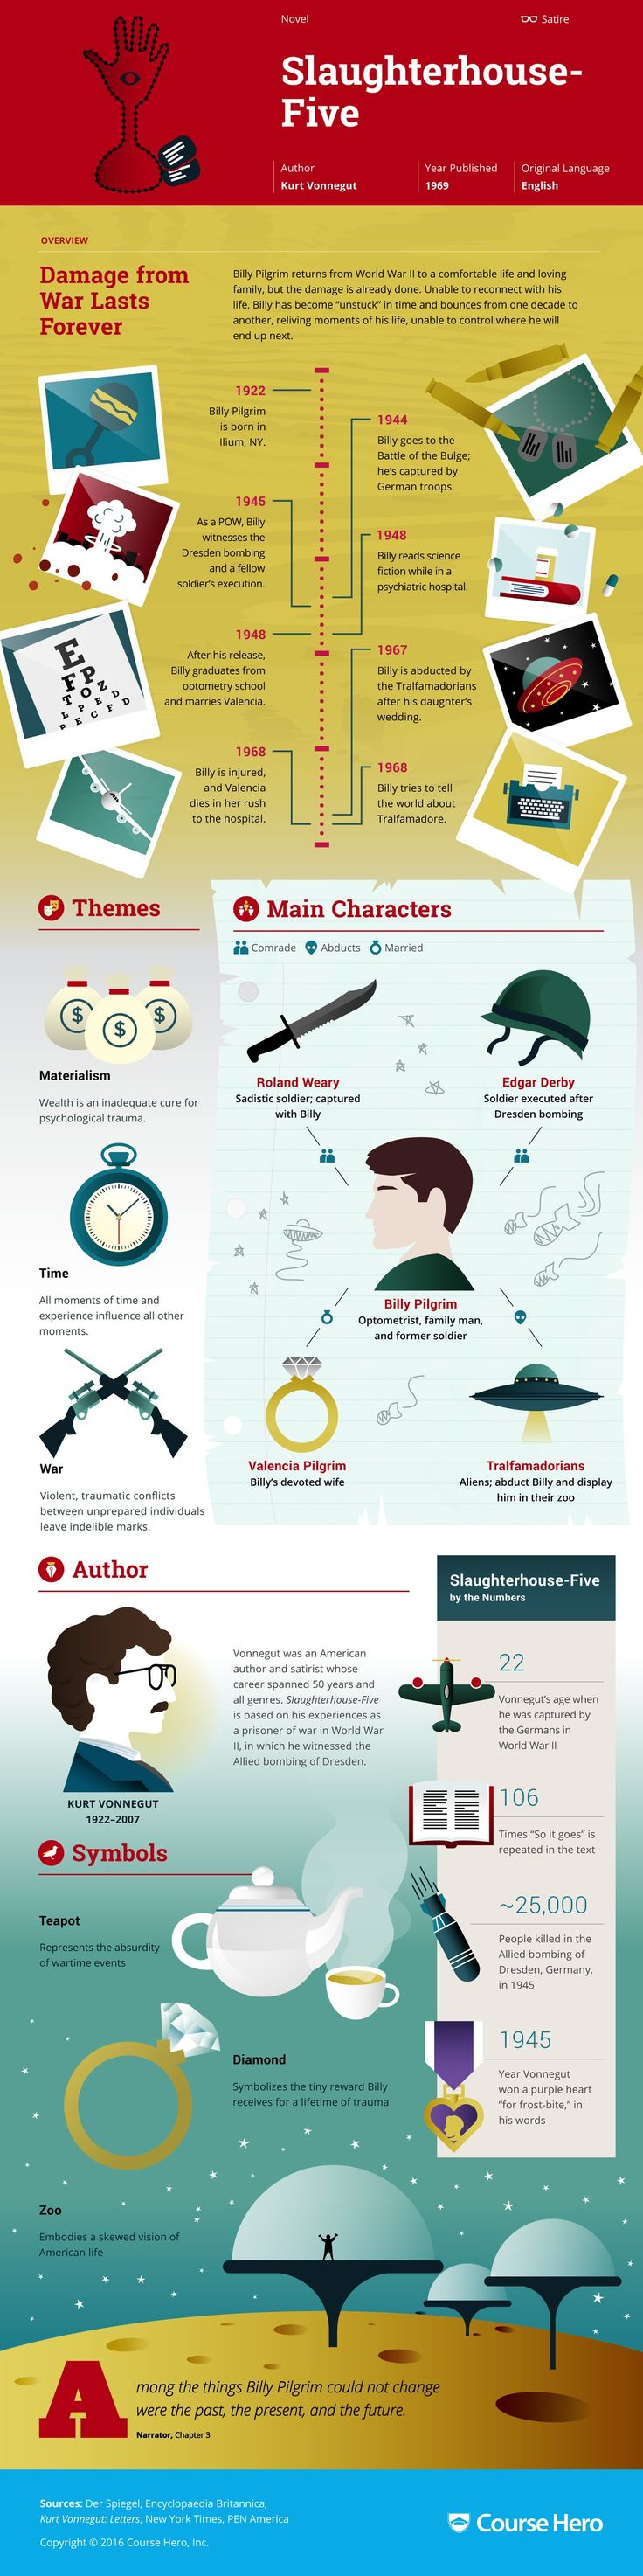 slaughterhouse five essay topics slaughterhouse five literary  best ideas about slaughterhouse five slaughterhouse five infographic course hero